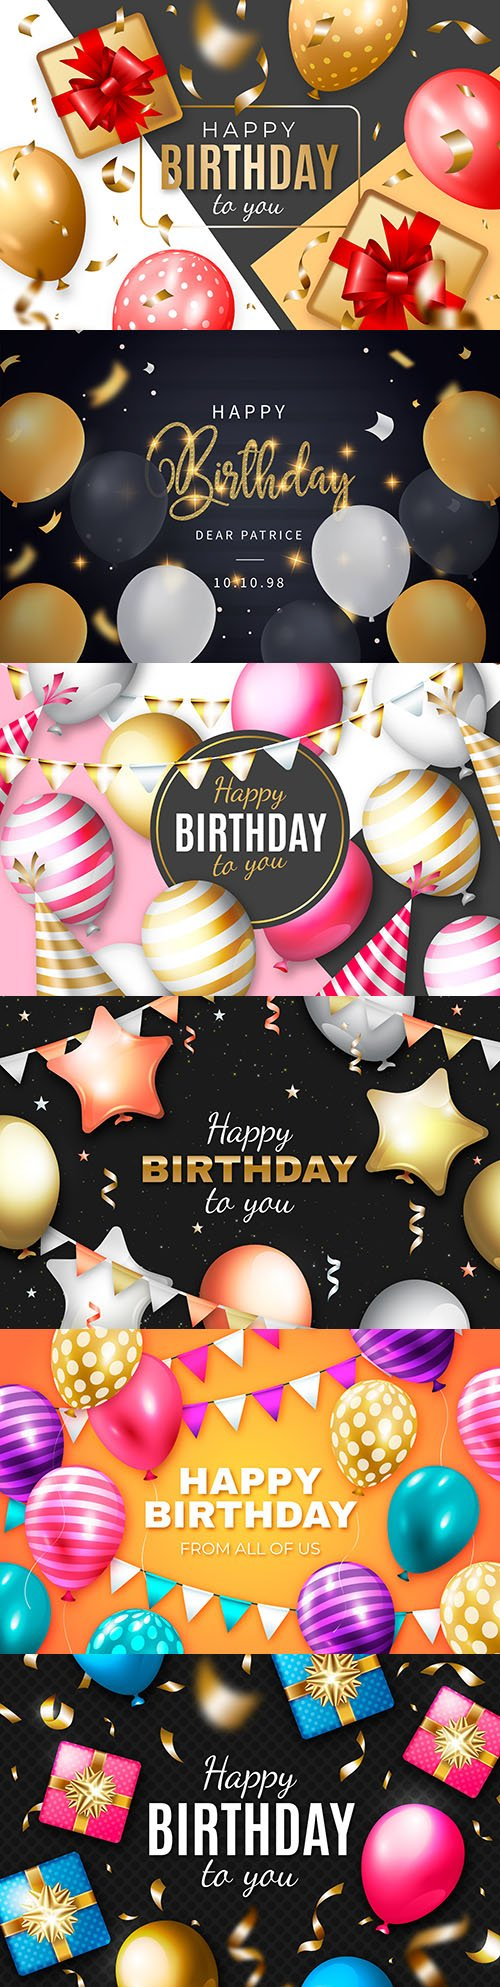 Happy birthday holiday invitation realistic balloons 14